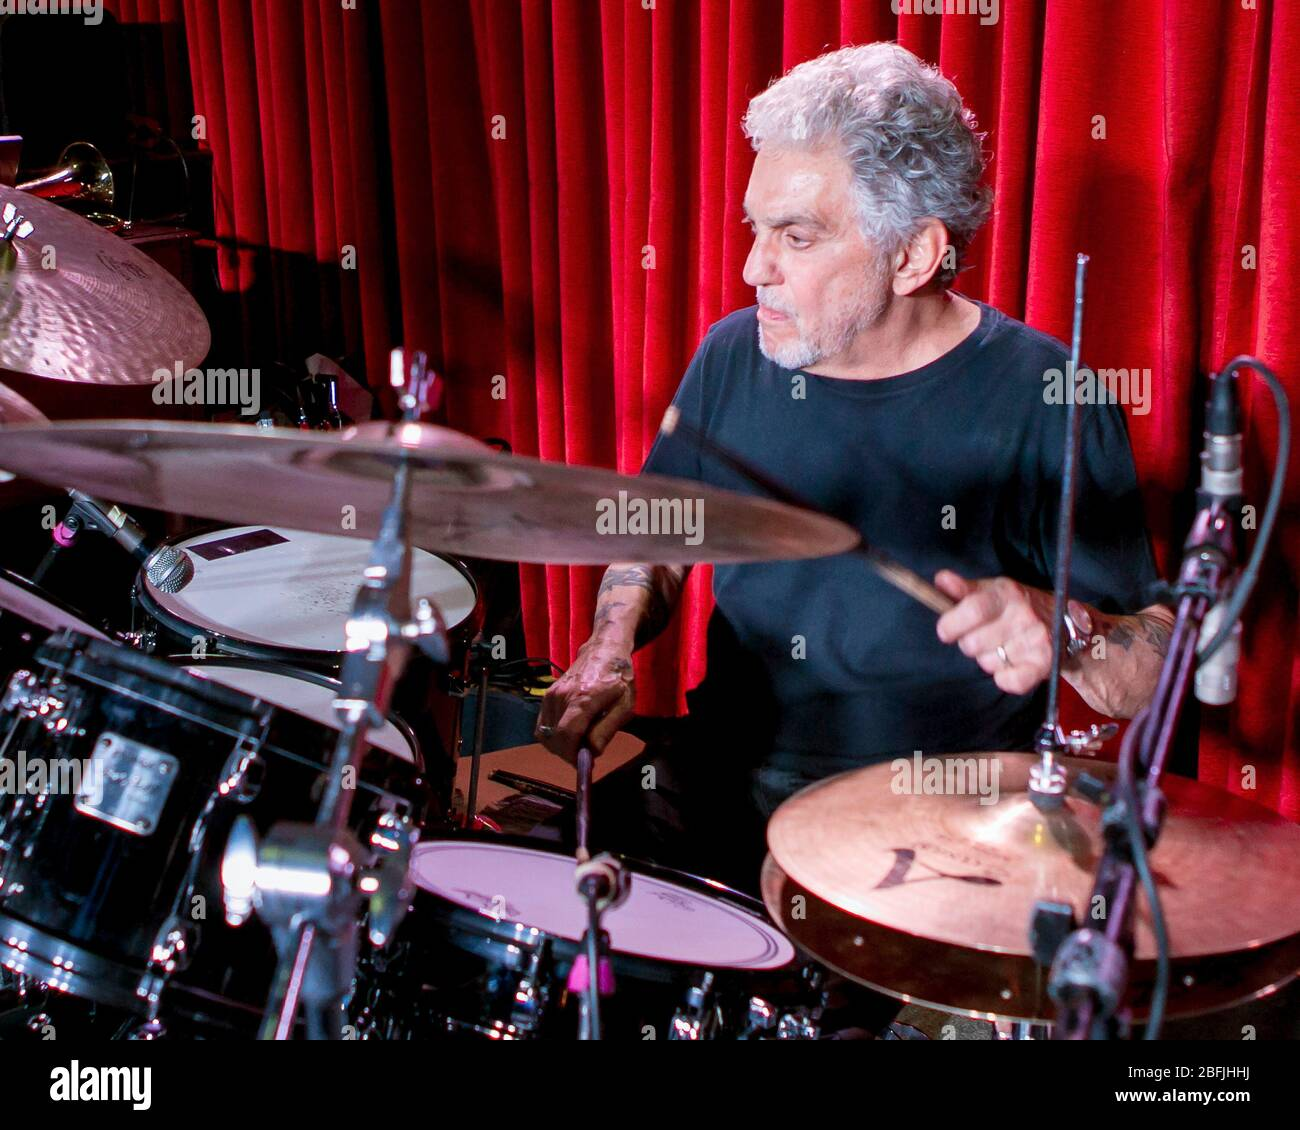 Drummer Steve Gadd warms up before a show with his band, the Steve Gadd Band, at the Catalina Jazz Club in Los Angeles, California. Stock Photo